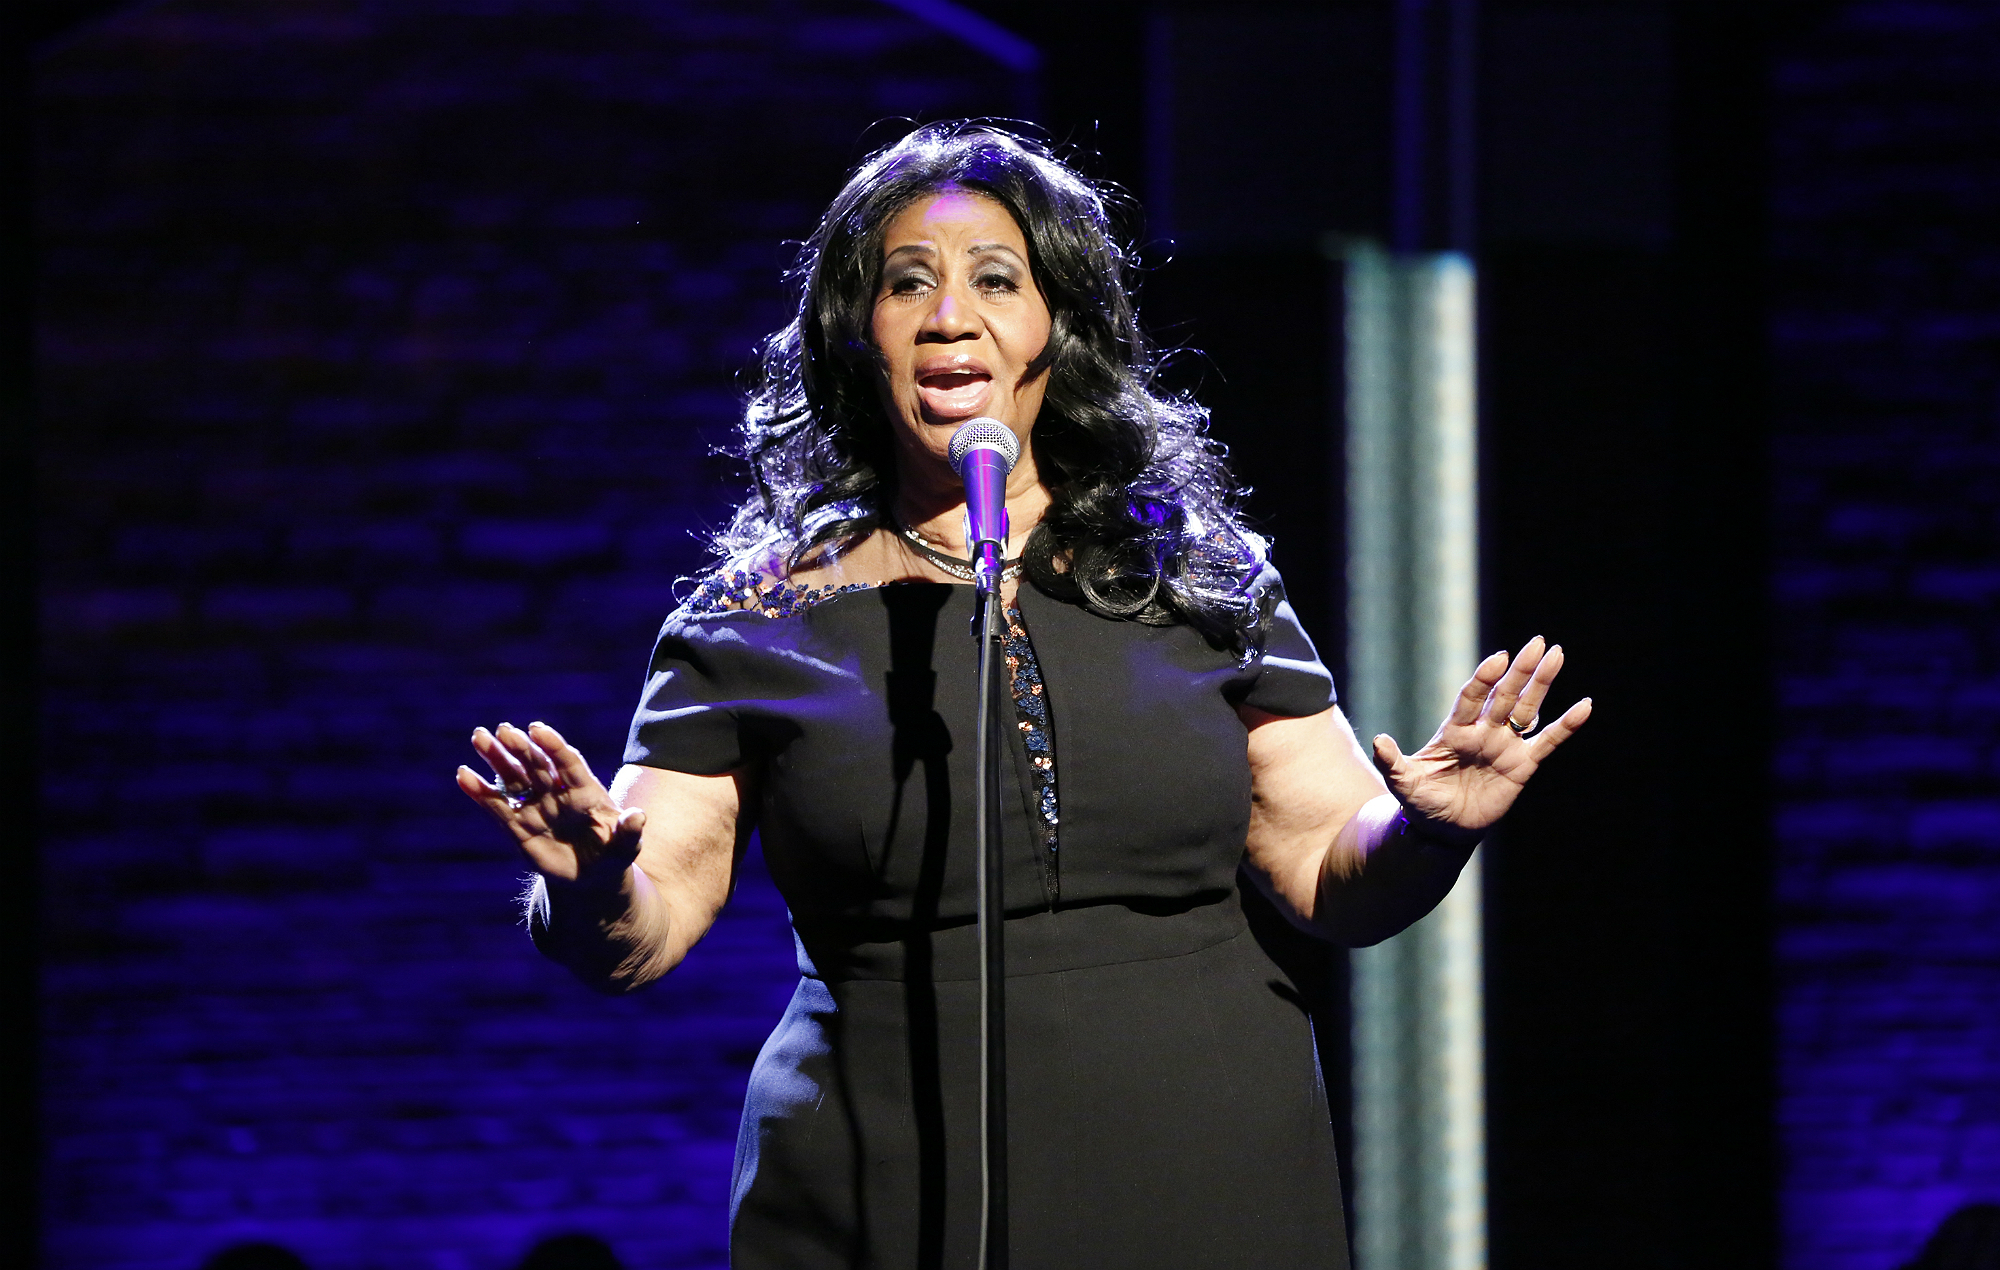 Aretha Franklin Is Quot Alert And Talking Quot According To Her Nephew